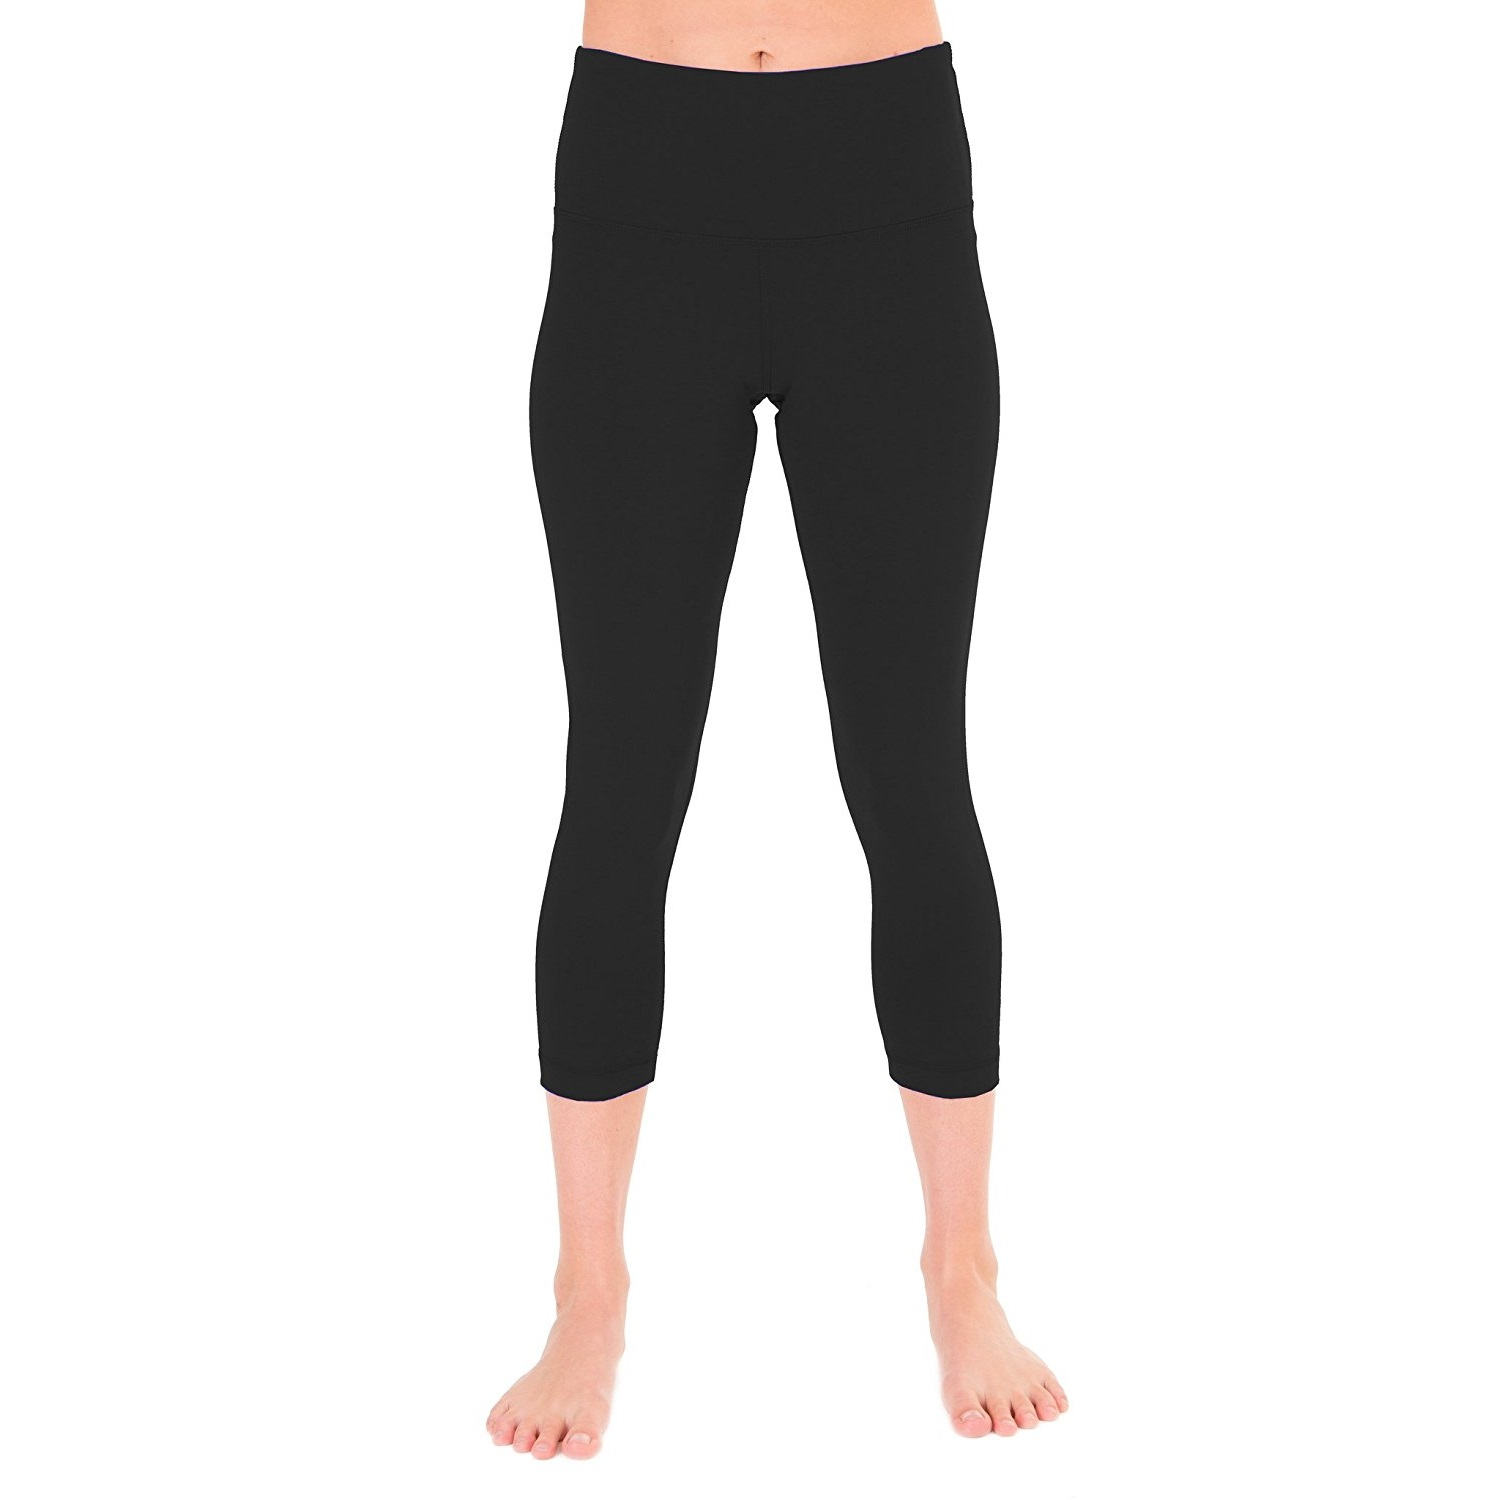 90 degree by reflex black womens yoga capri pants